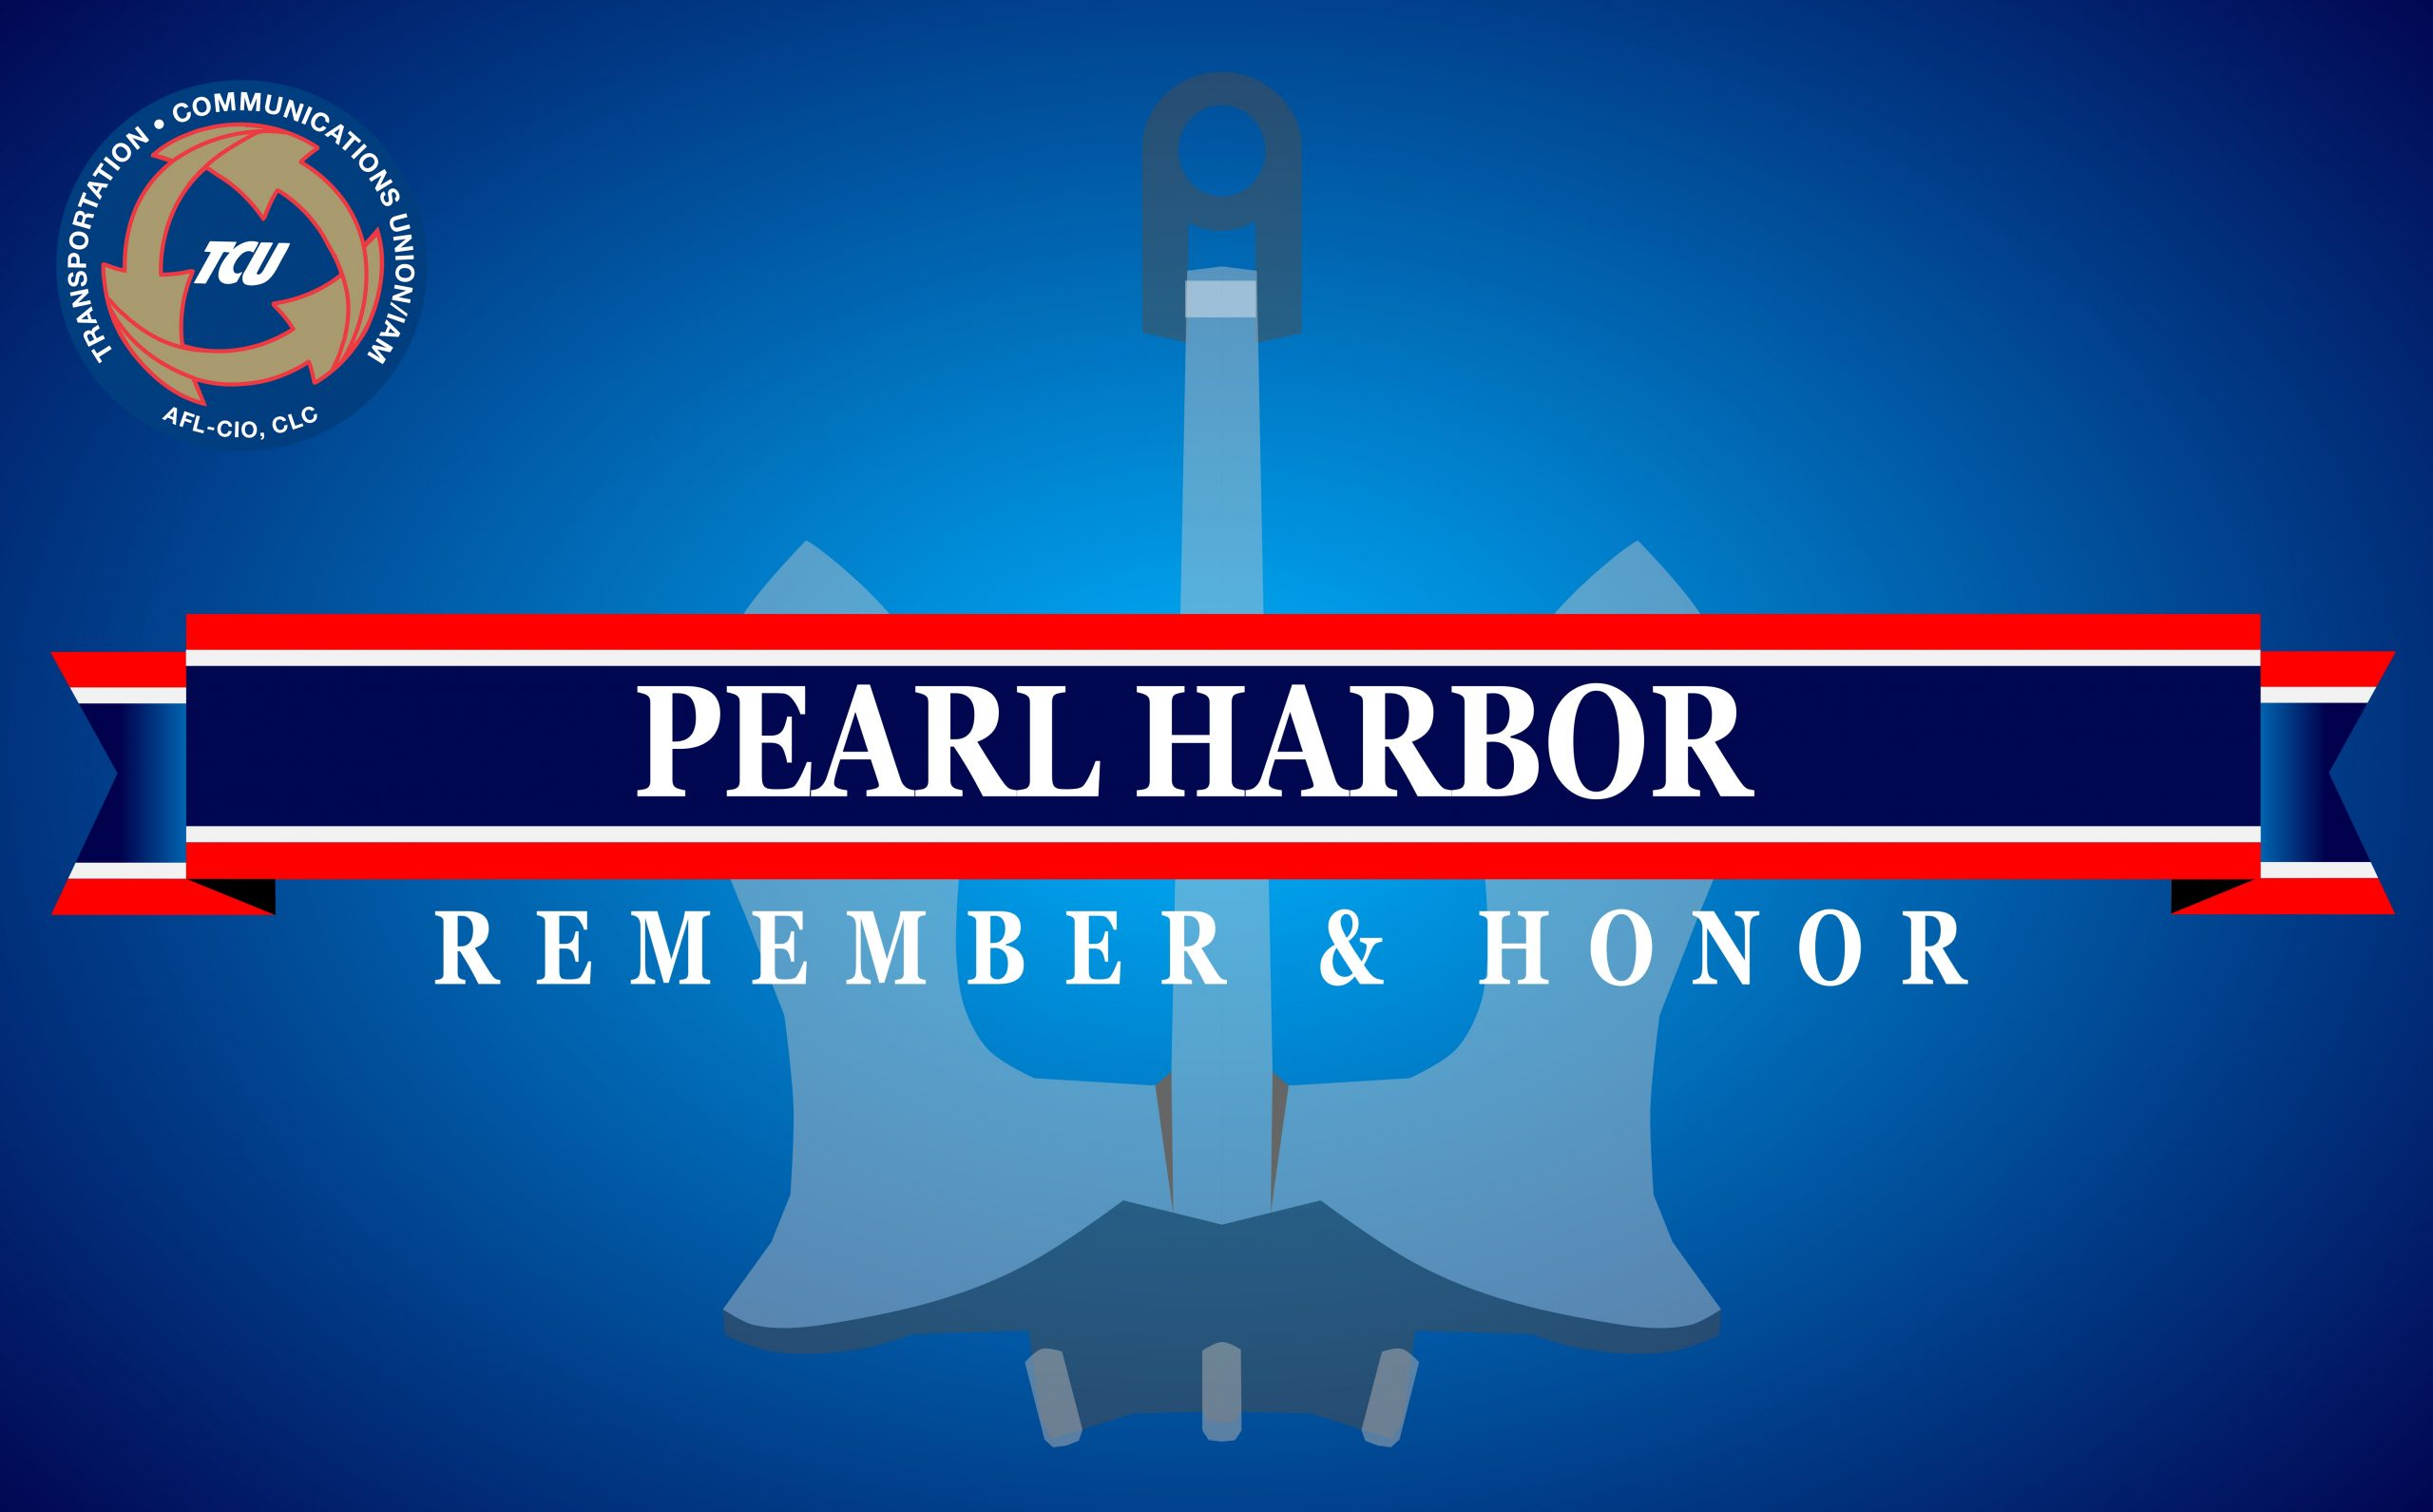 Pearl Harbor Remembrance Day